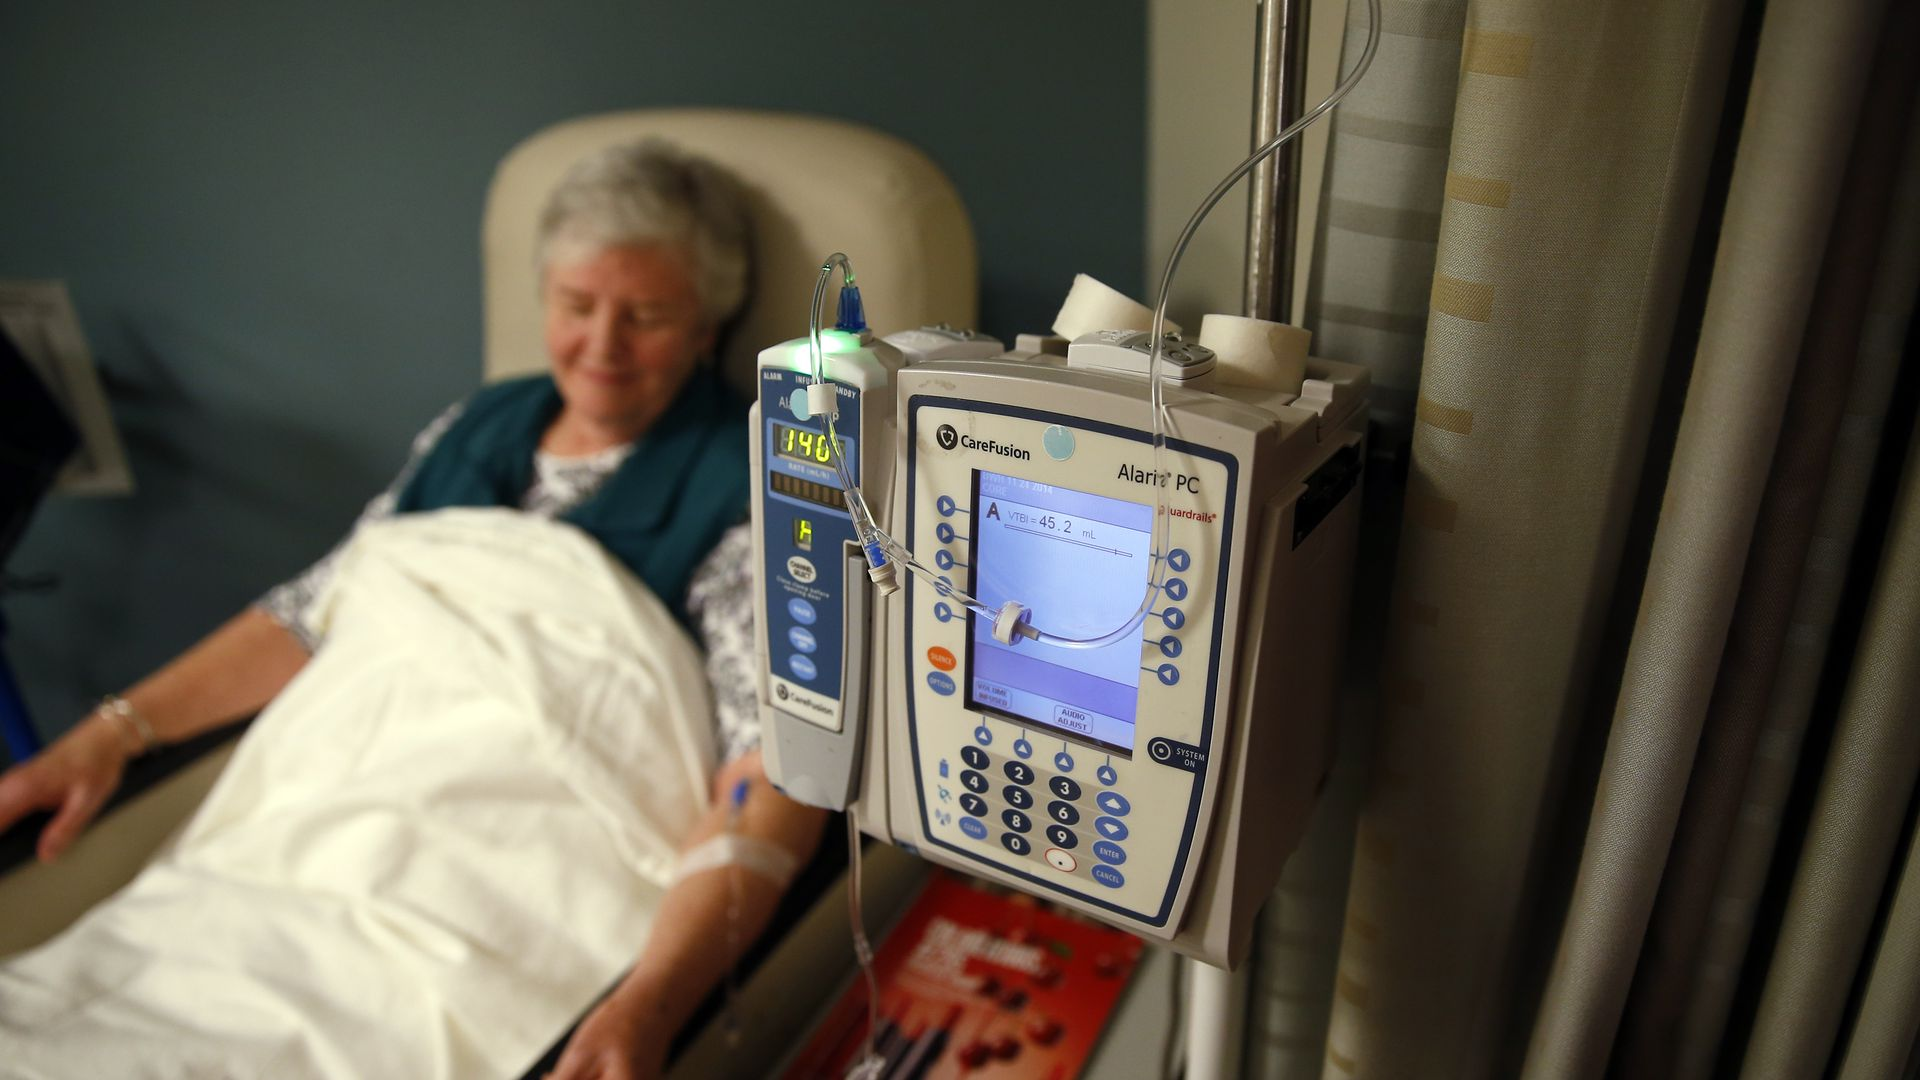 A patient gets her medication intravenously at a hospital.